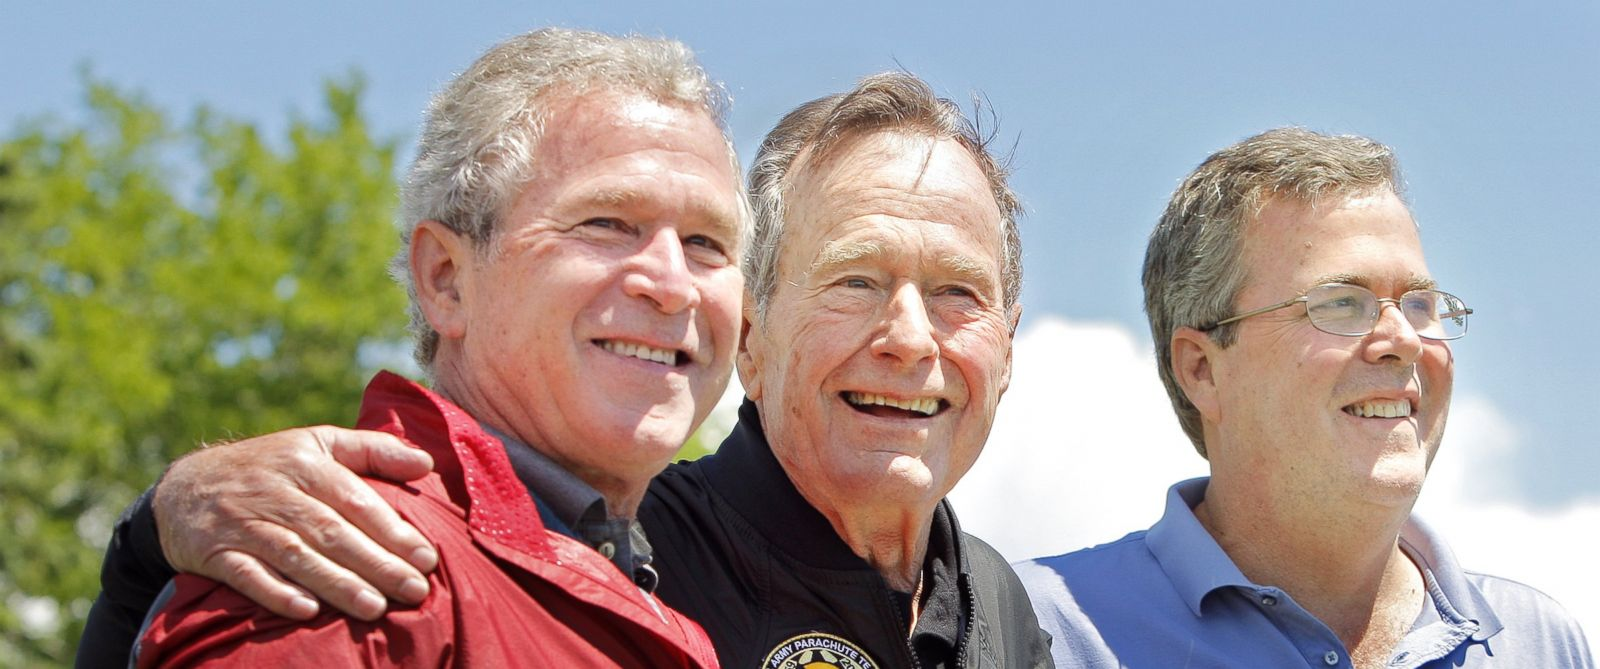 PHOTO: George H.W. Bush is flanked by his sons George W. Bush and Jeb Bush after completing a parachute jump in Kennebunkport on June 12, 2009 for his 85th birthday.